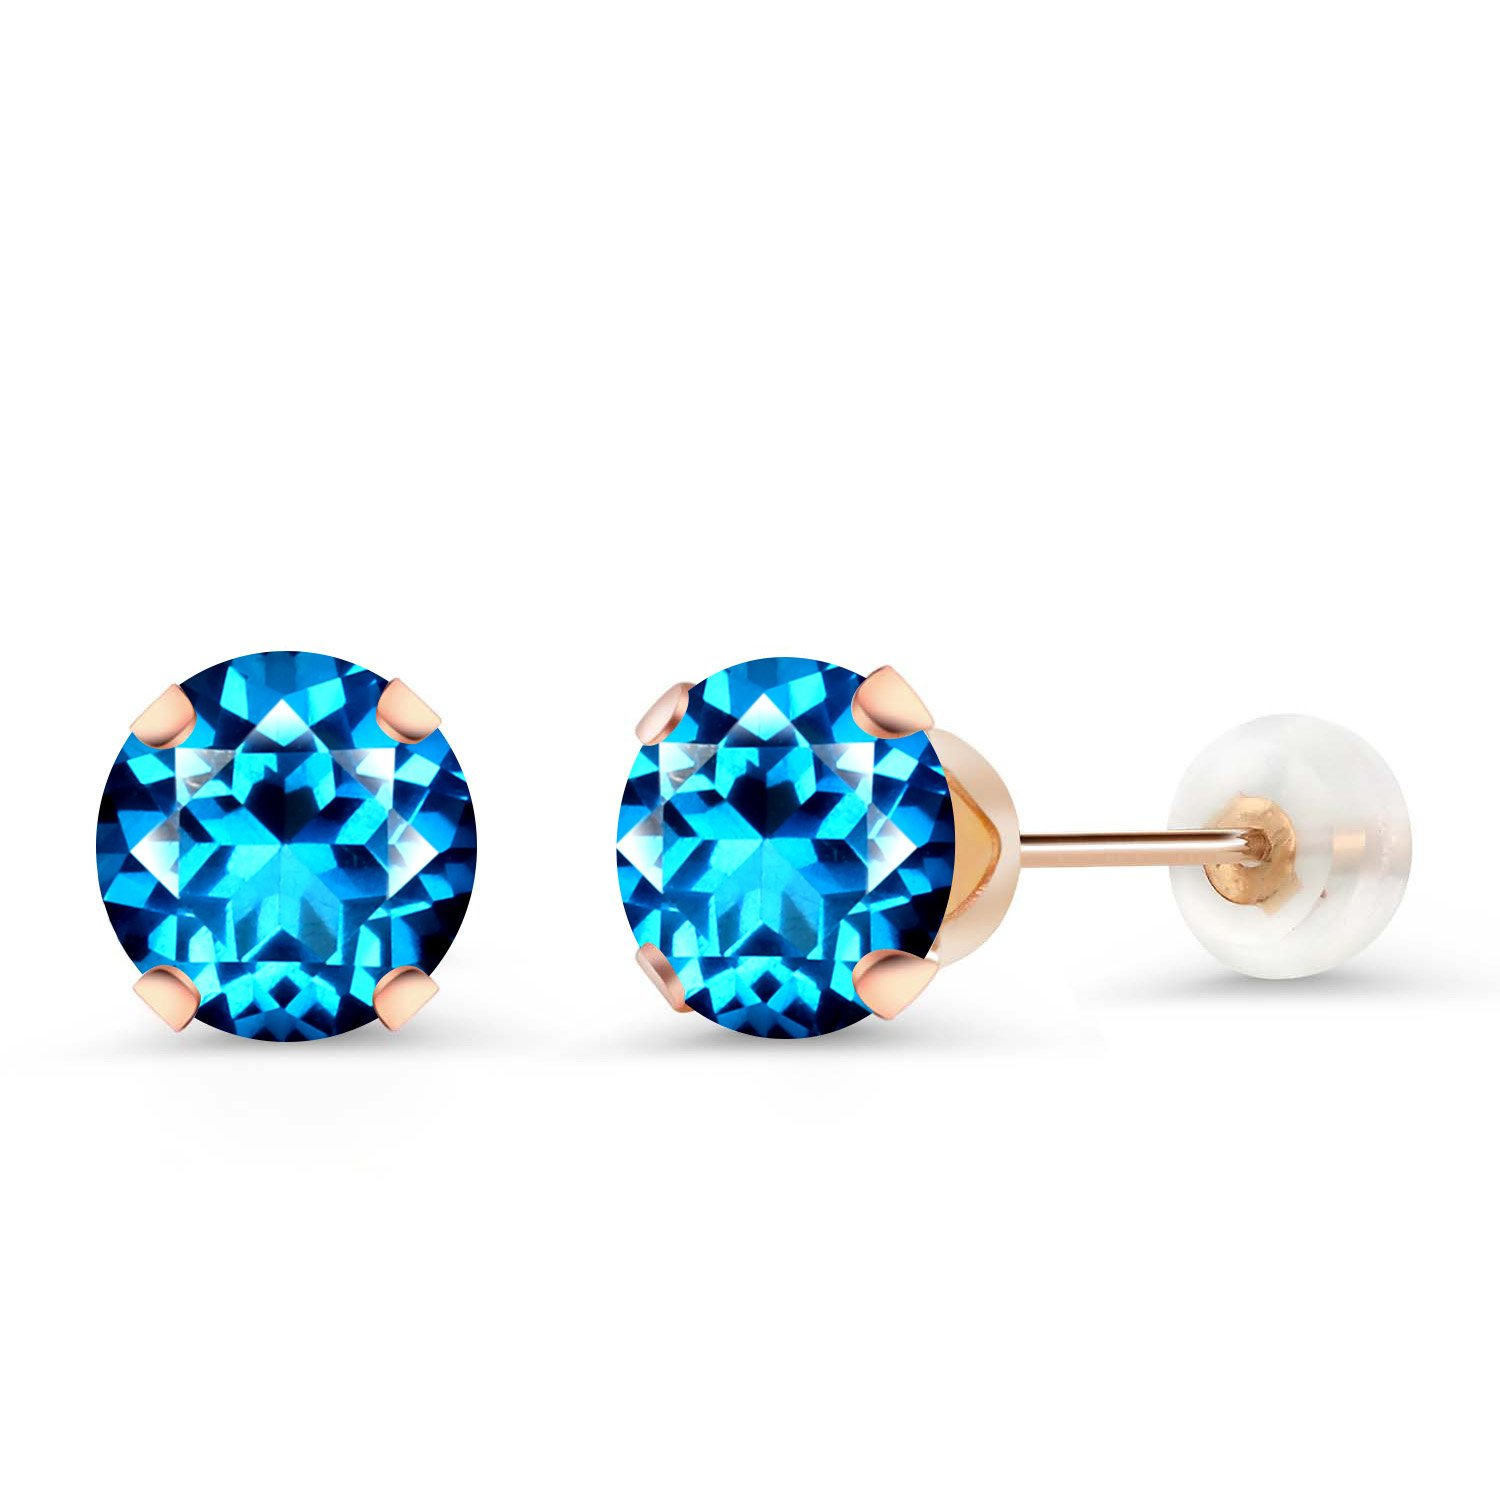 10K Rose Gold Stud Earrings Set with Round Kashmir Blue Topaz from Swarovski